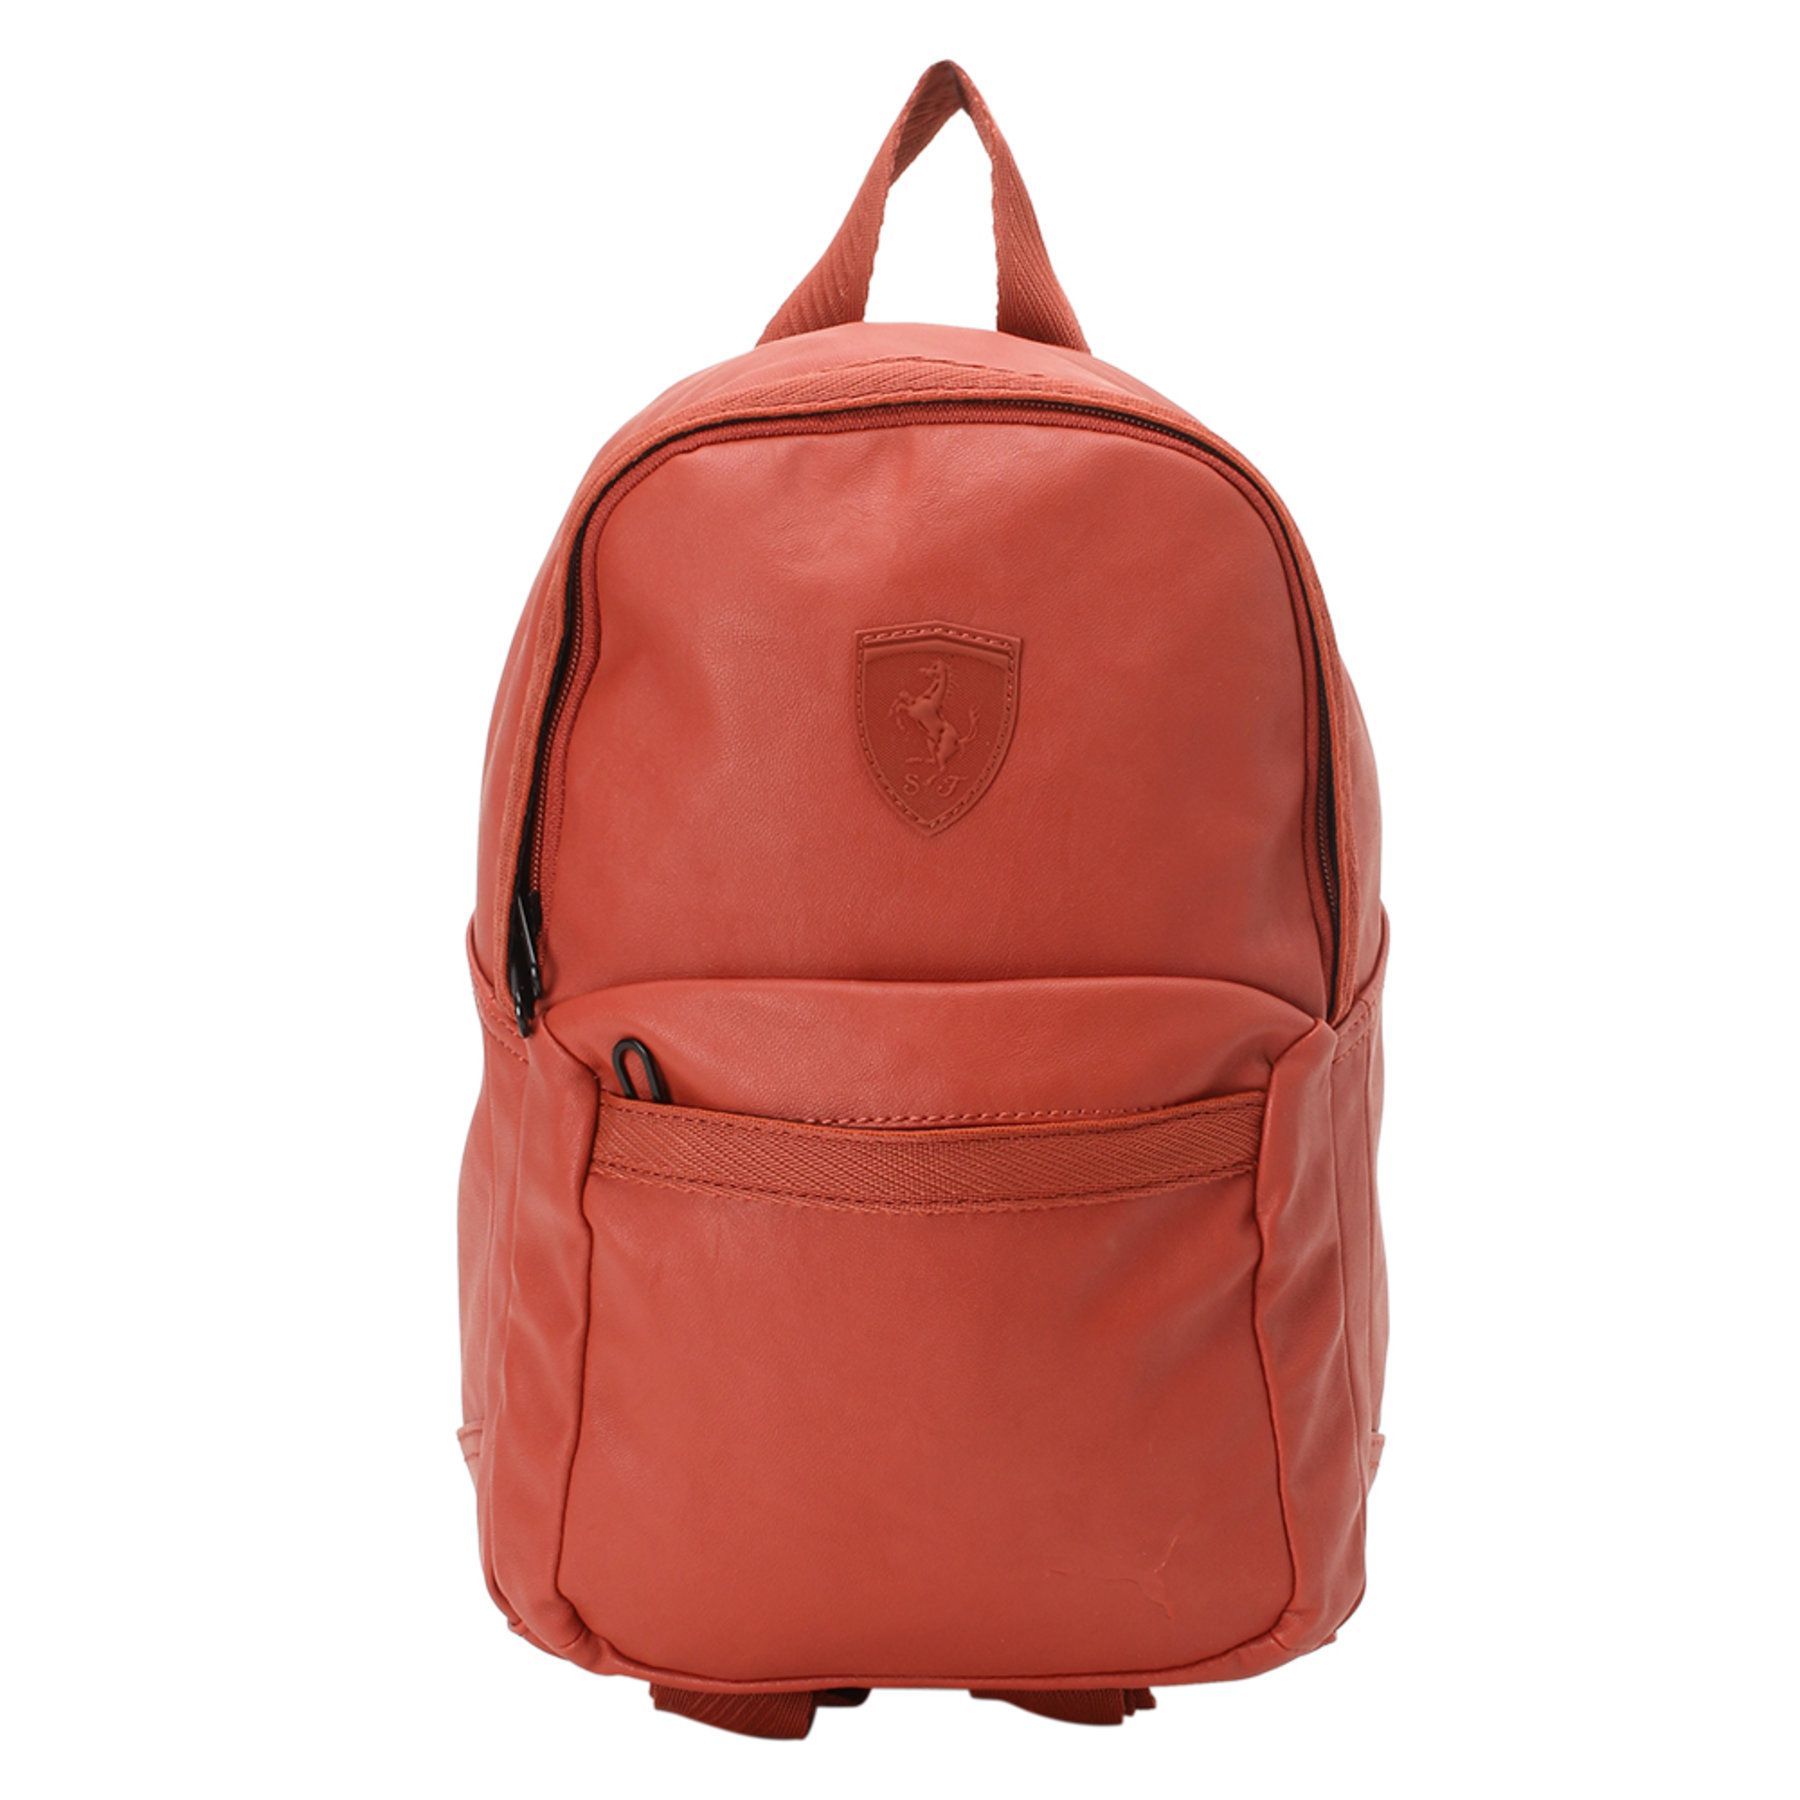 49df884cce Puma Red SF LS Zainetto Women Backpack - Buy Puma Red SF LS Zainetto Women  Backpack Online at Low Price - Snapdeal